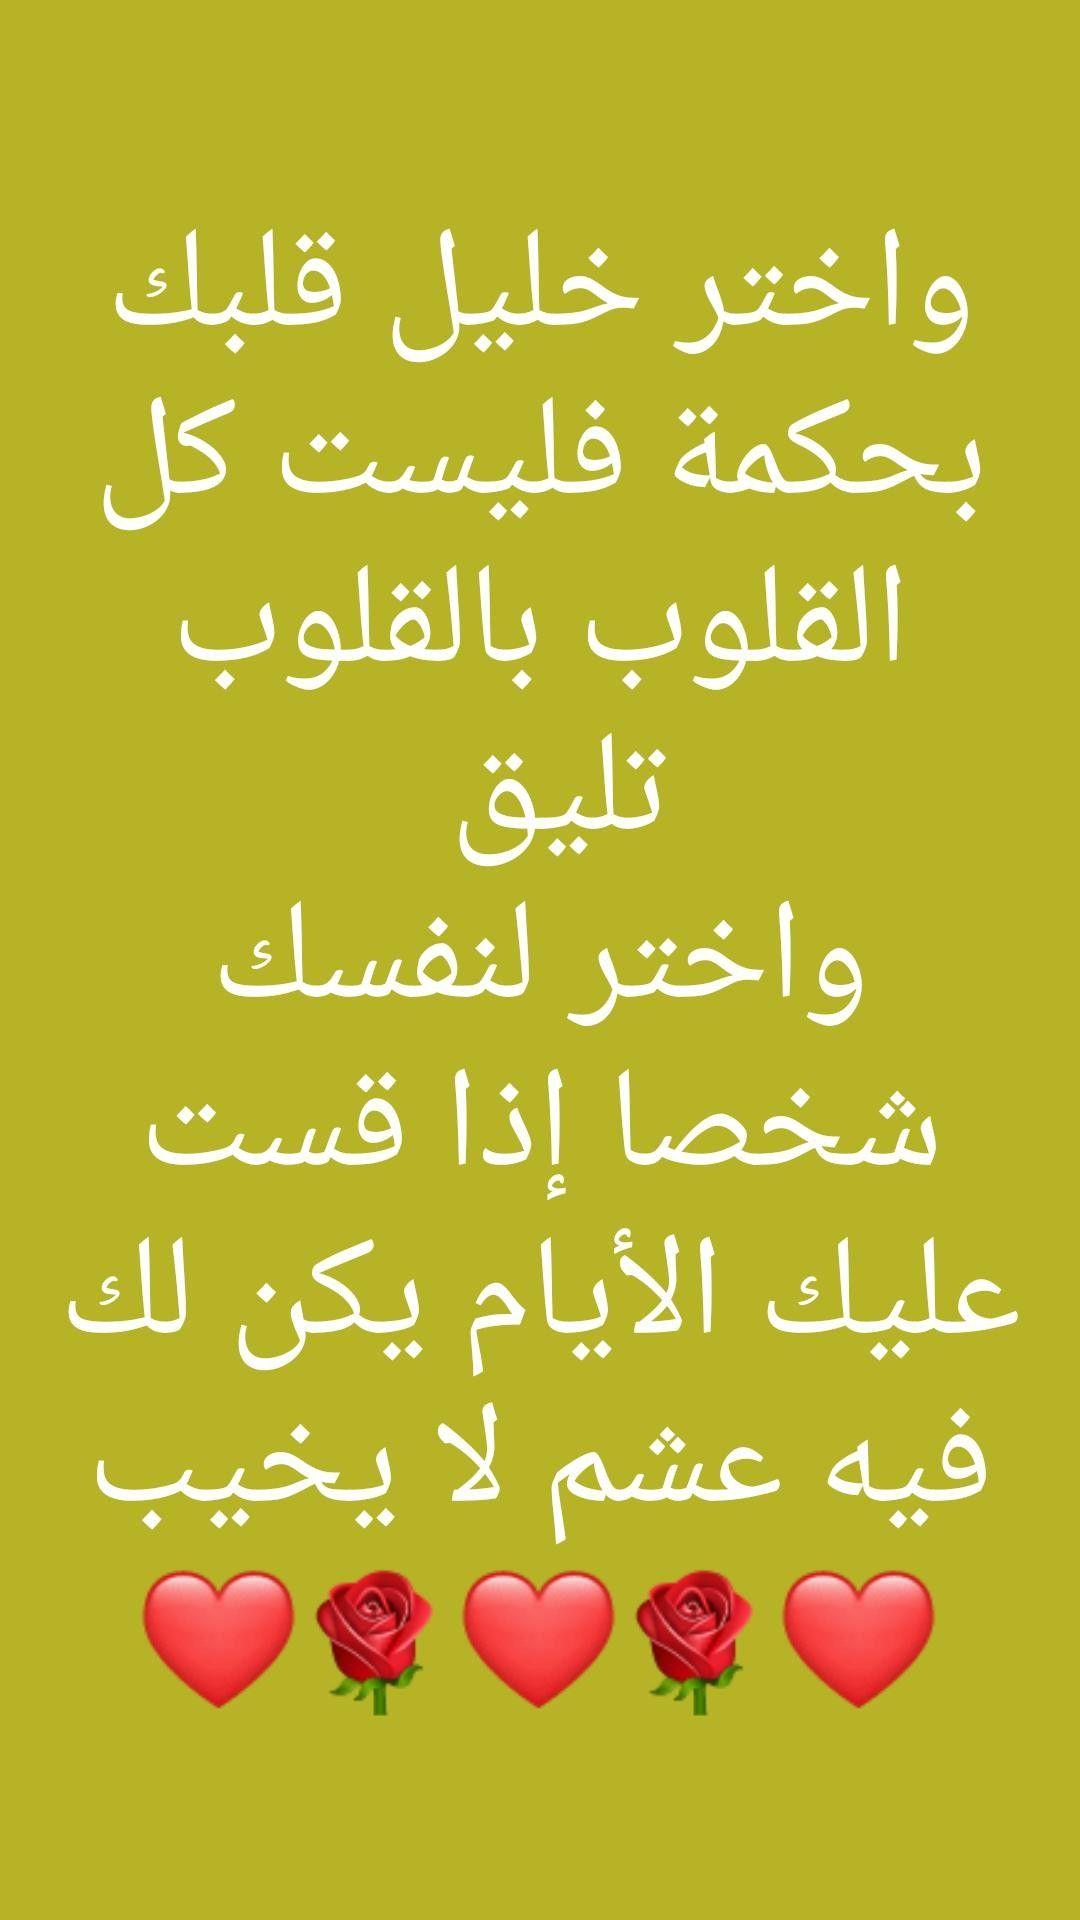 Pin By Yousef On ح ك م Words Quotes Romantic Love Quotes Beautiful Chickens